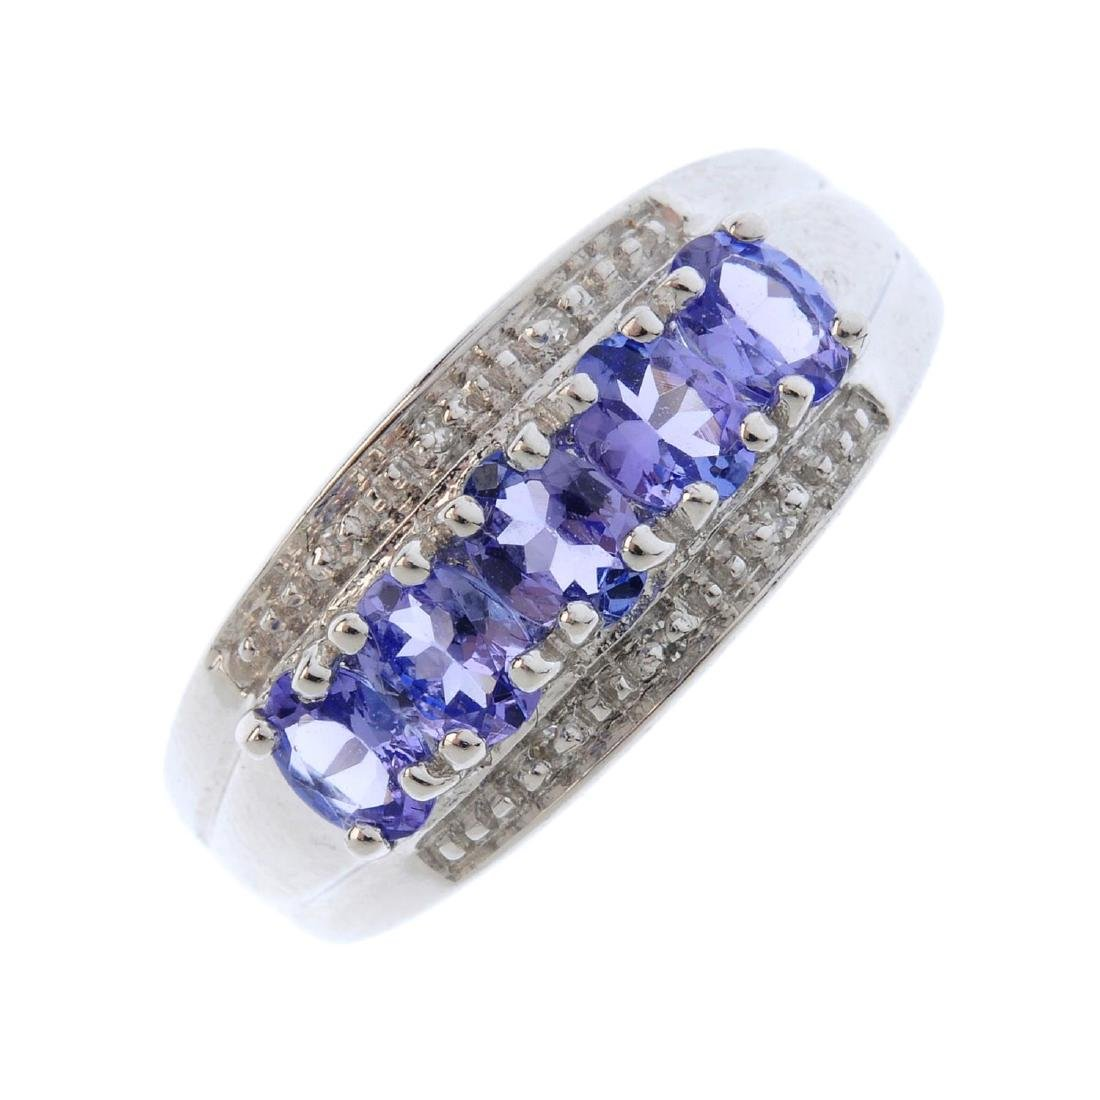 A 9ct gold tanzanite and diamond dress ring. The